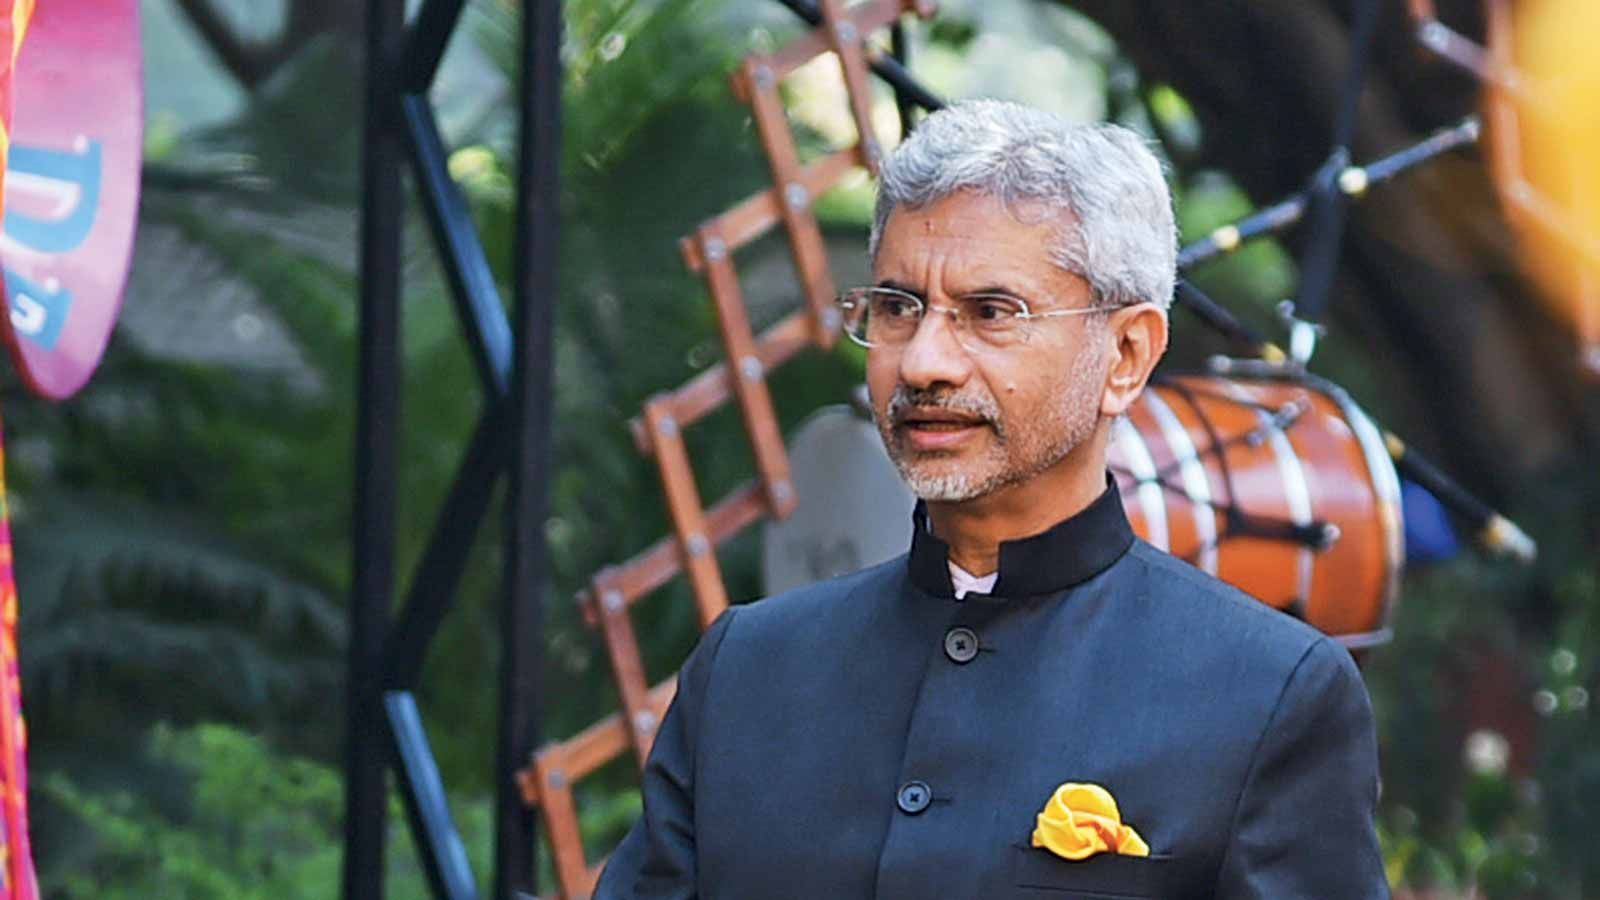 lac-standoff-india-approaches-china-bilaterally-says-external-affairs-minister